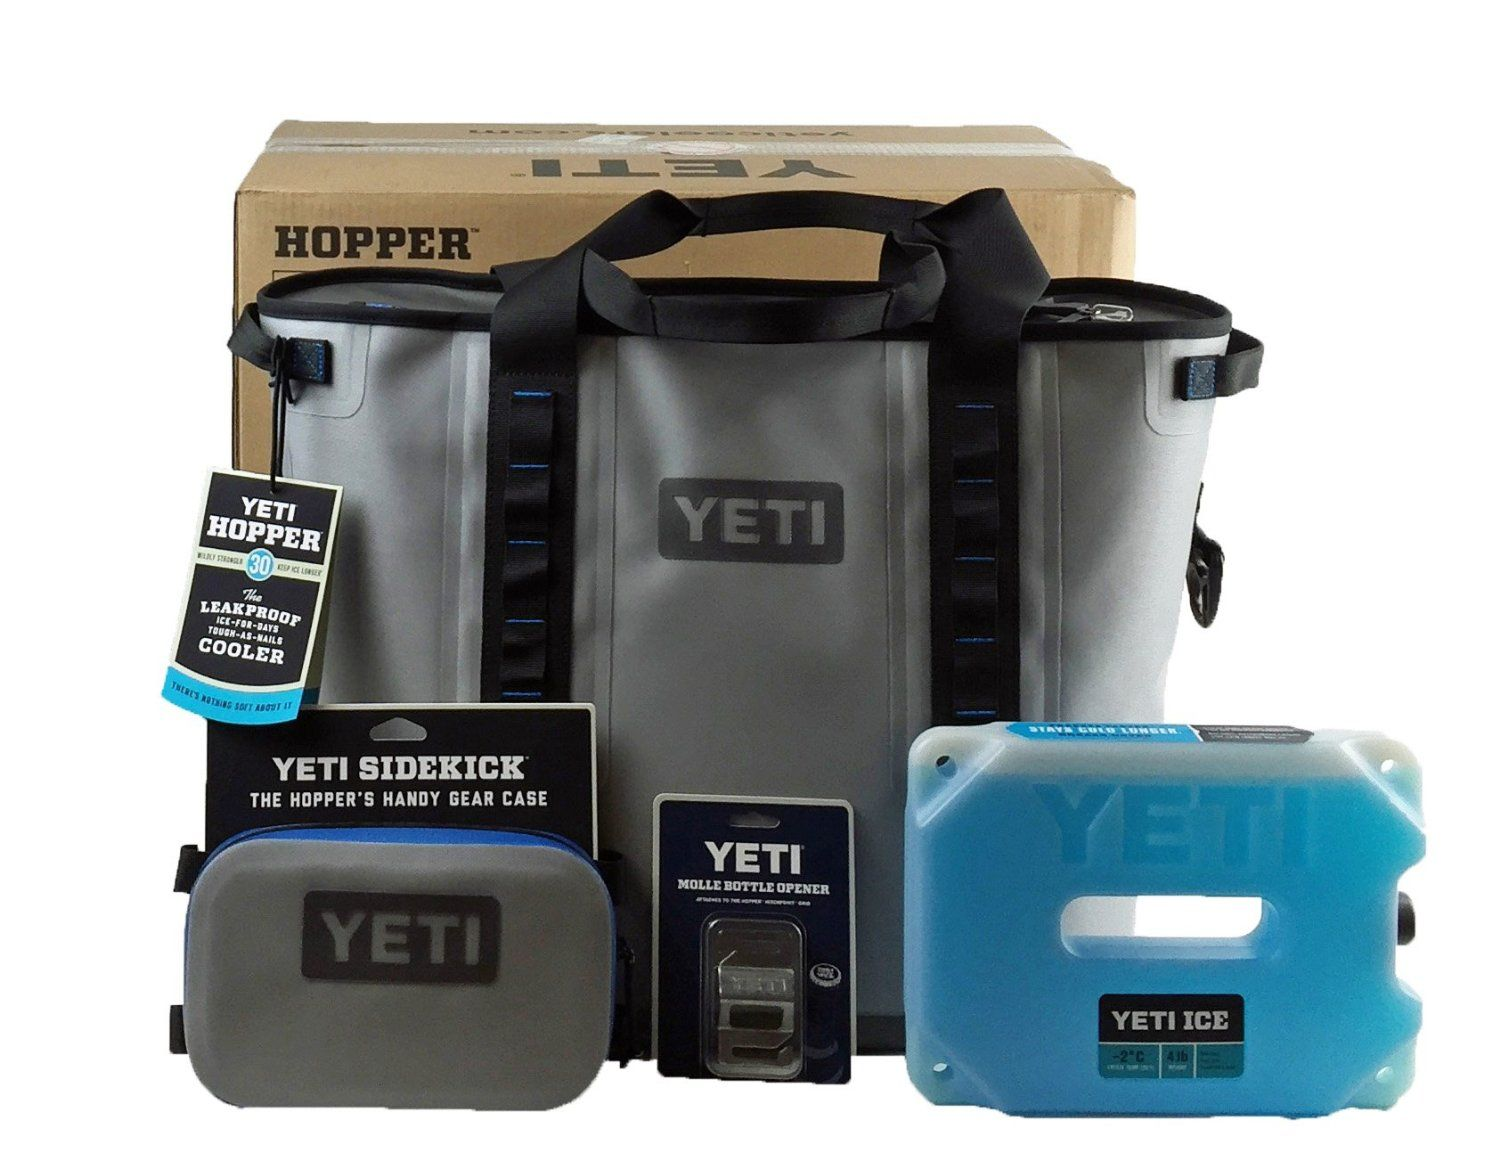 Ultimate YETI Hopper 30 Bundle | Sports & Outdoors | Pinterest ...